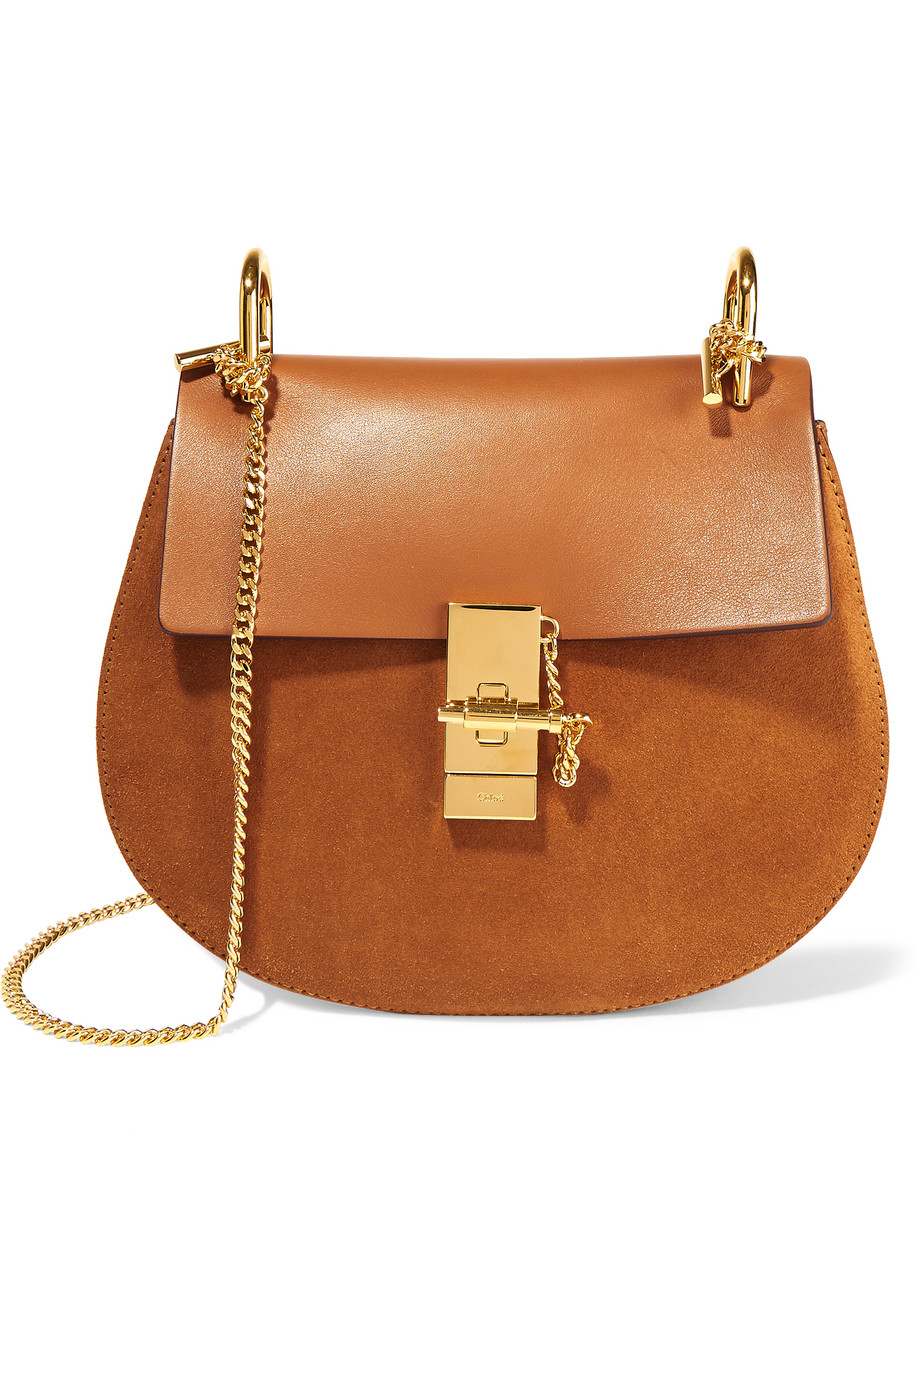 Chloé Drew Small Leather and Suede Shoulder Bag, Camel, Women's